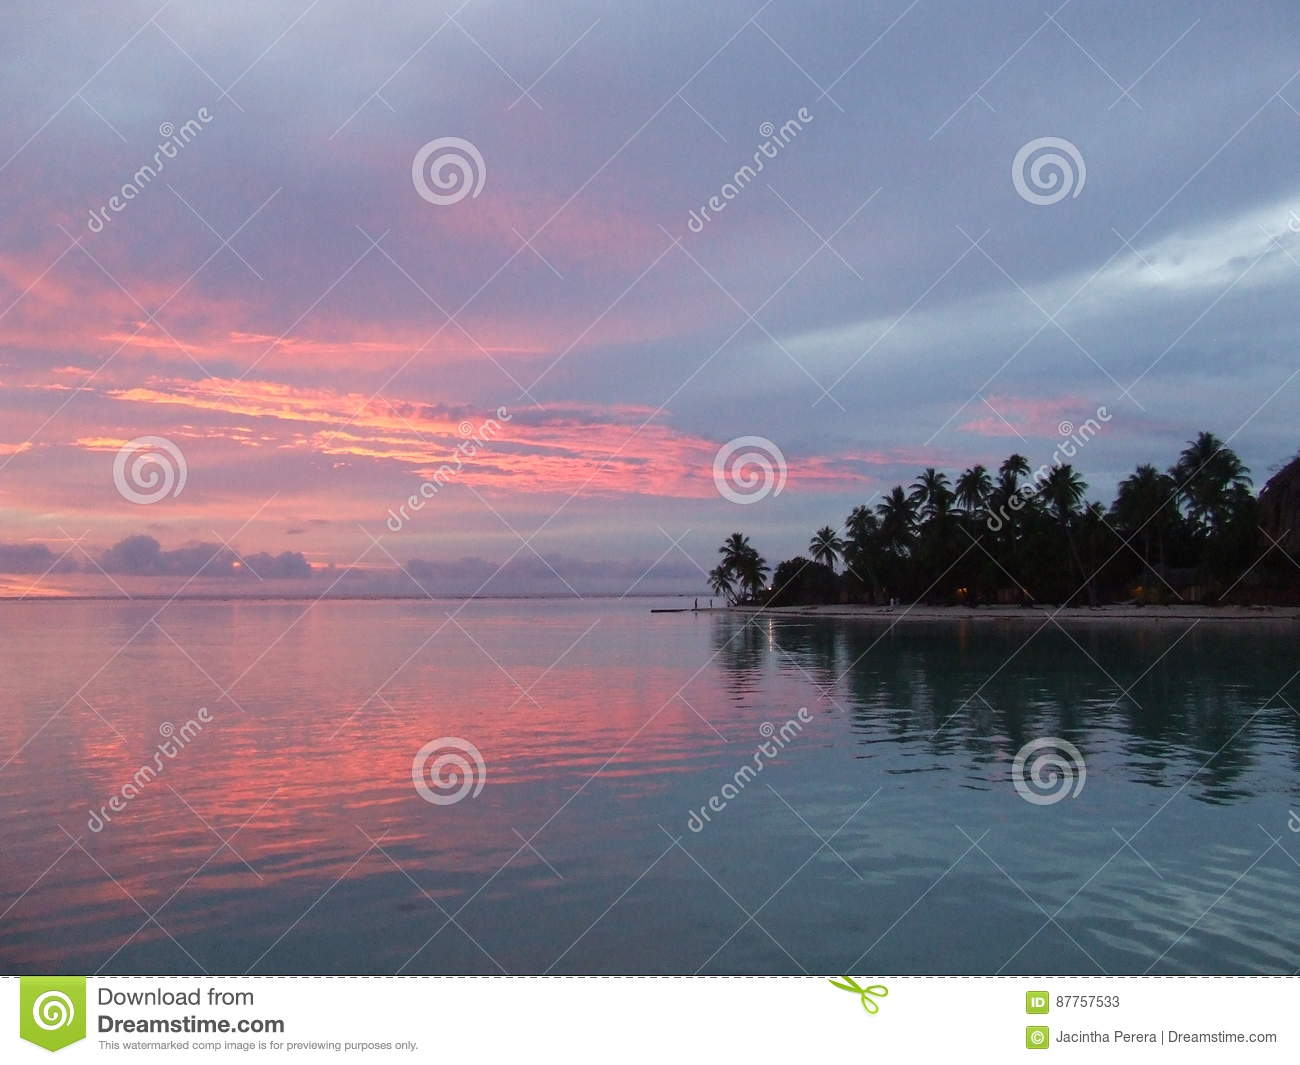 Sunset Reflected on Water